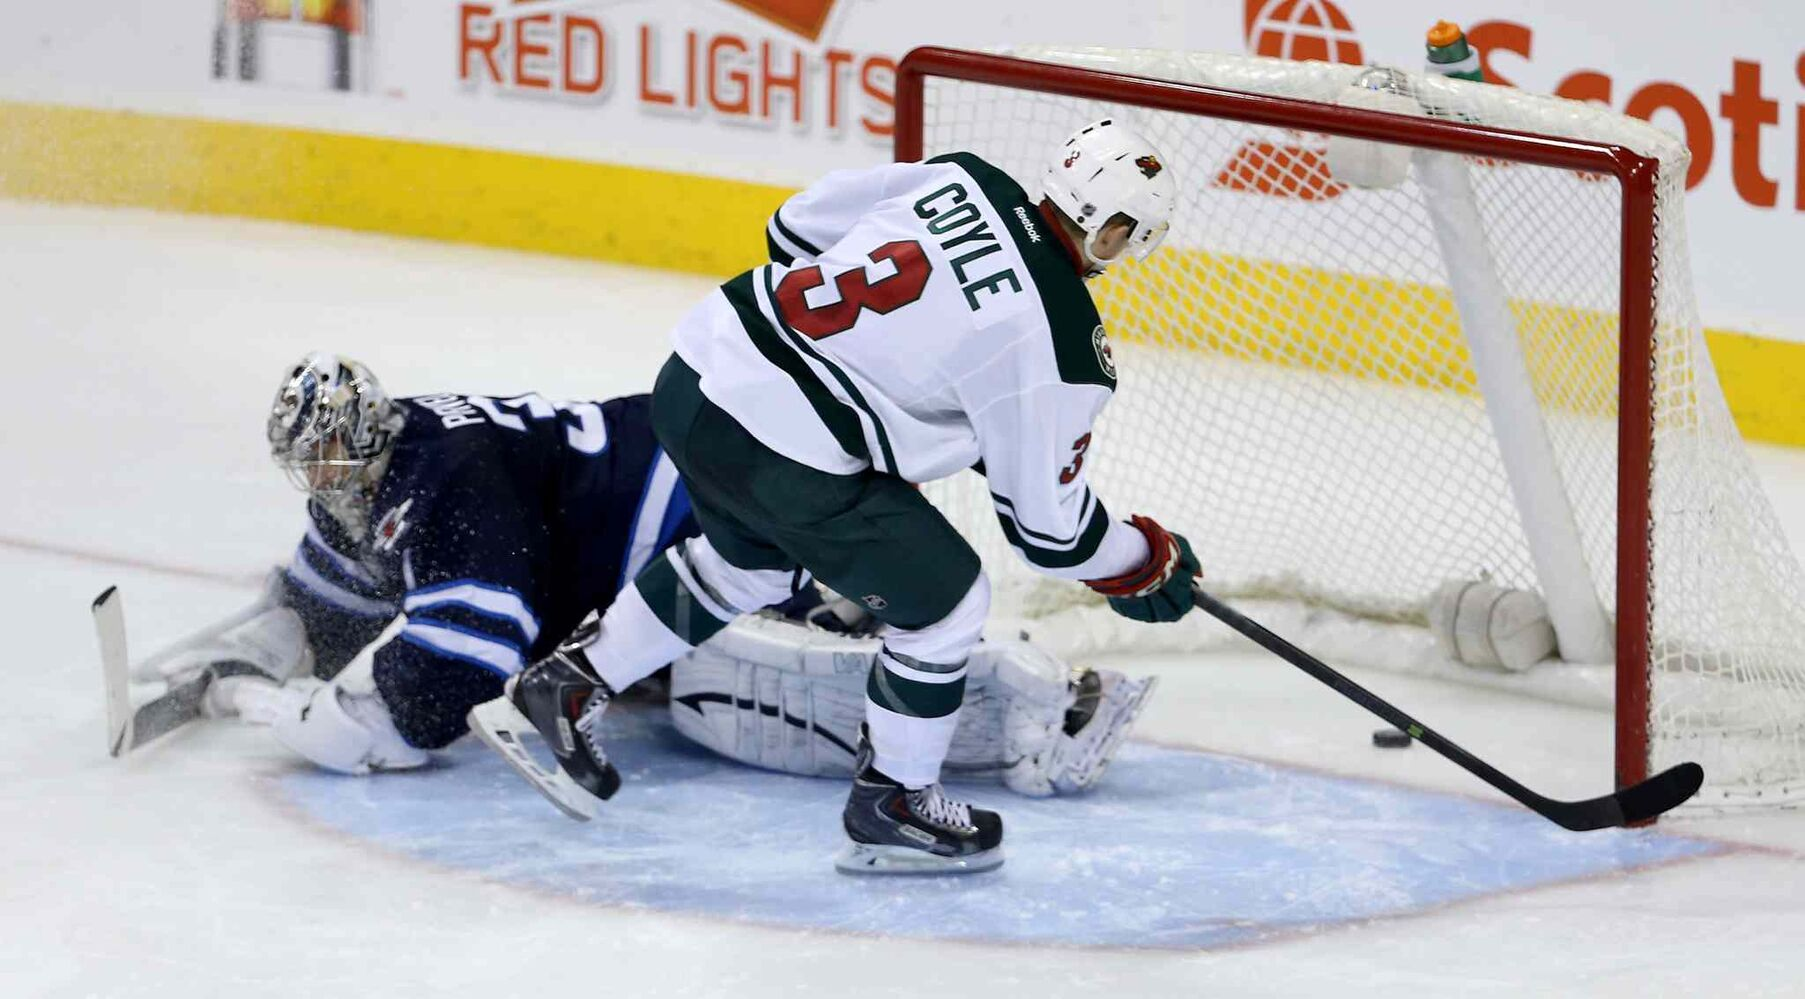 Coyle nets the shootout winner. (TREVOR HAGAN / WINNIPEG FREE PRESS)